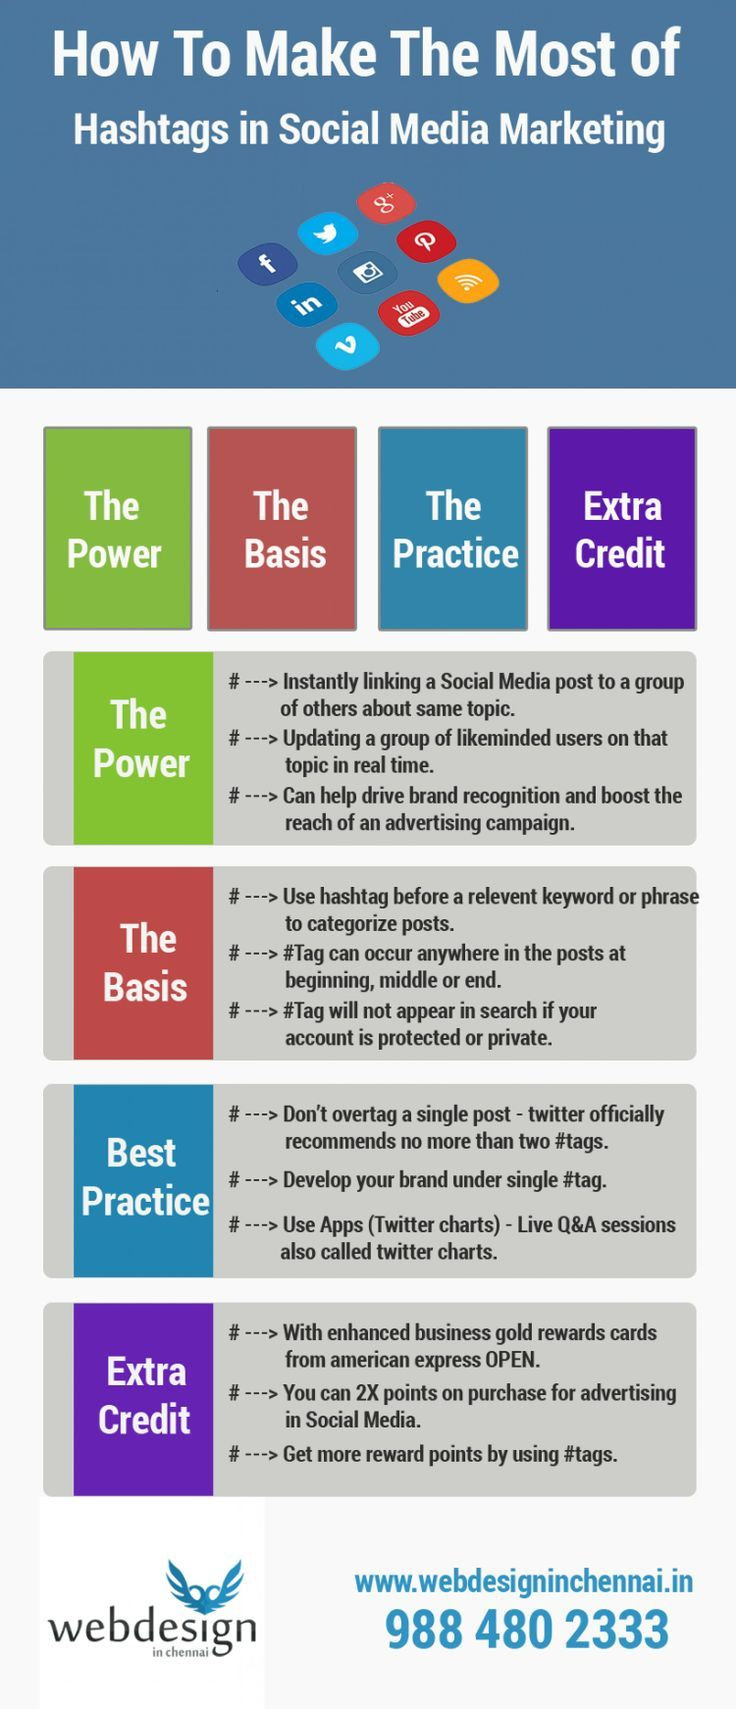 202 best How Tos - Social Media, Email Marketing and Small Business ...